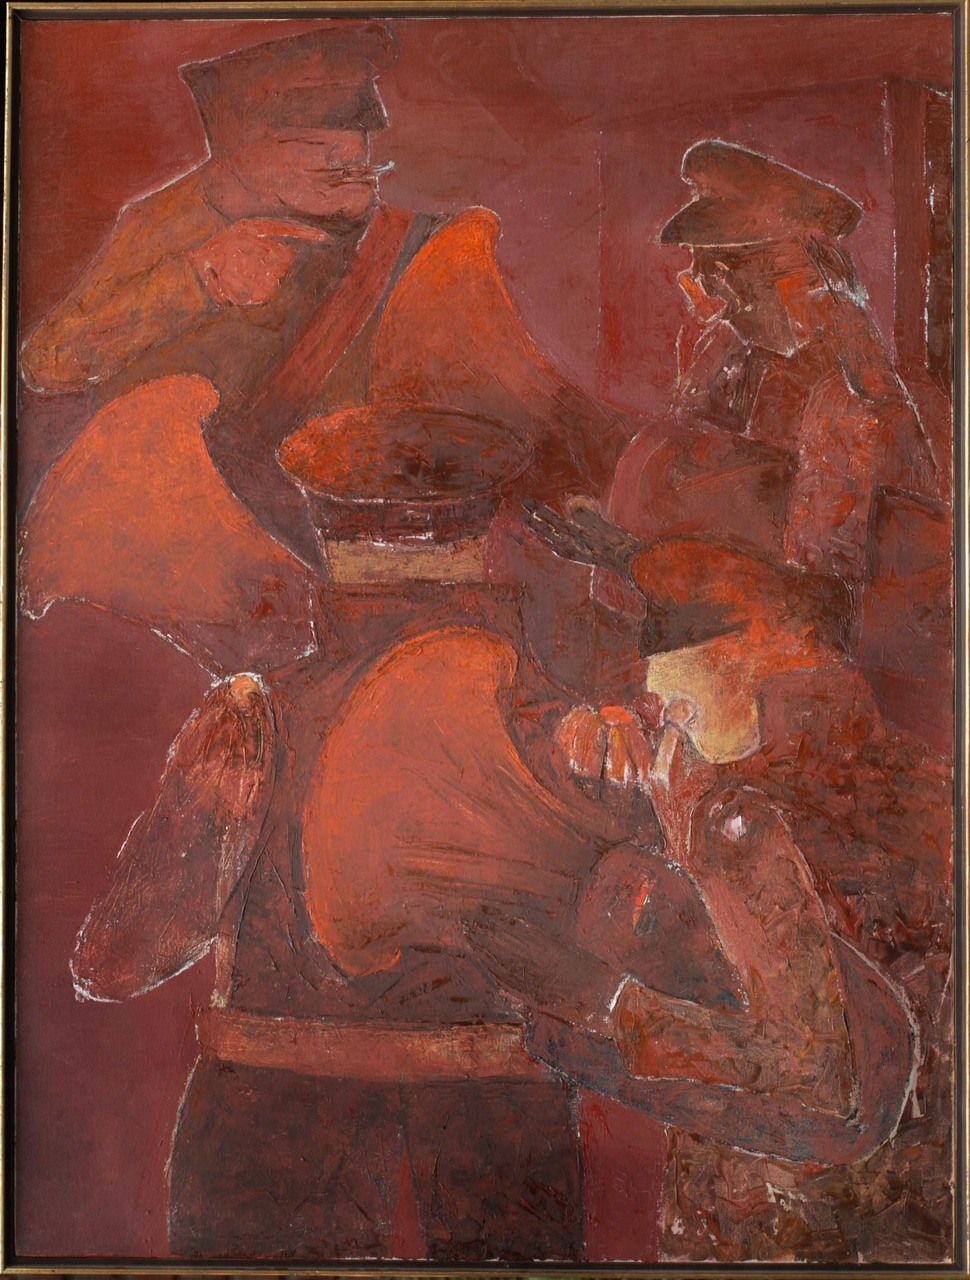 Tuba Players, 2008. Oil on canvas, 121.9 x 91.4 cm. (48 x 36 in.)